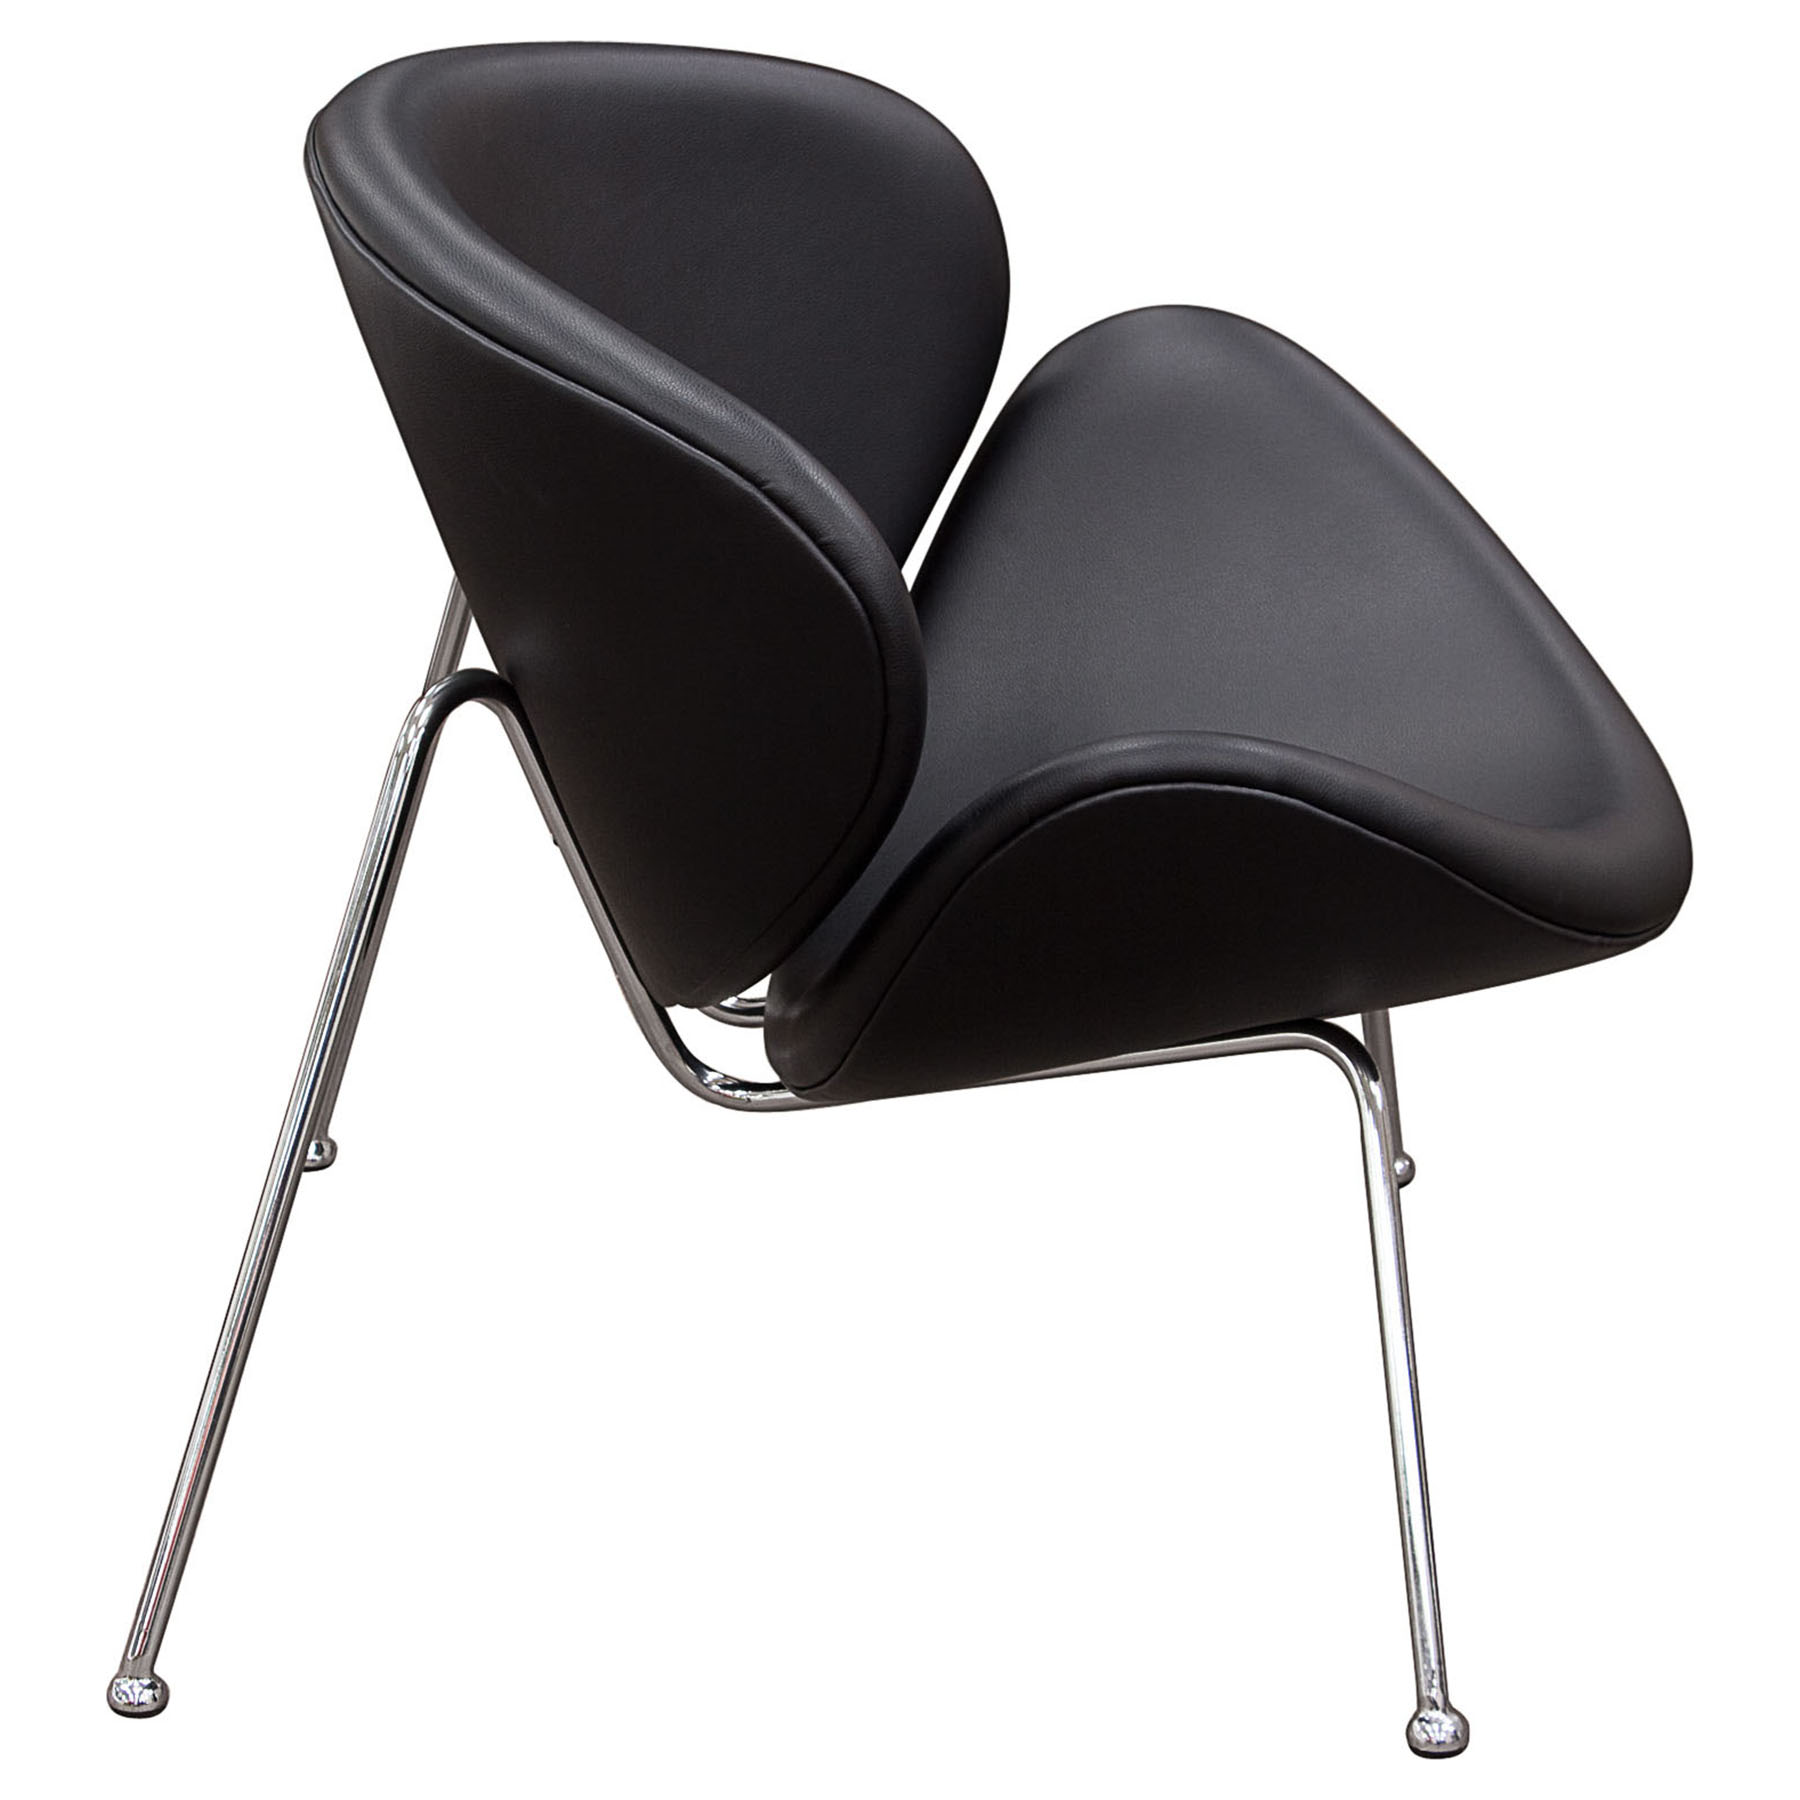 Roxy Accent Chair - Black, Chrome - DS-ROXYCHBL